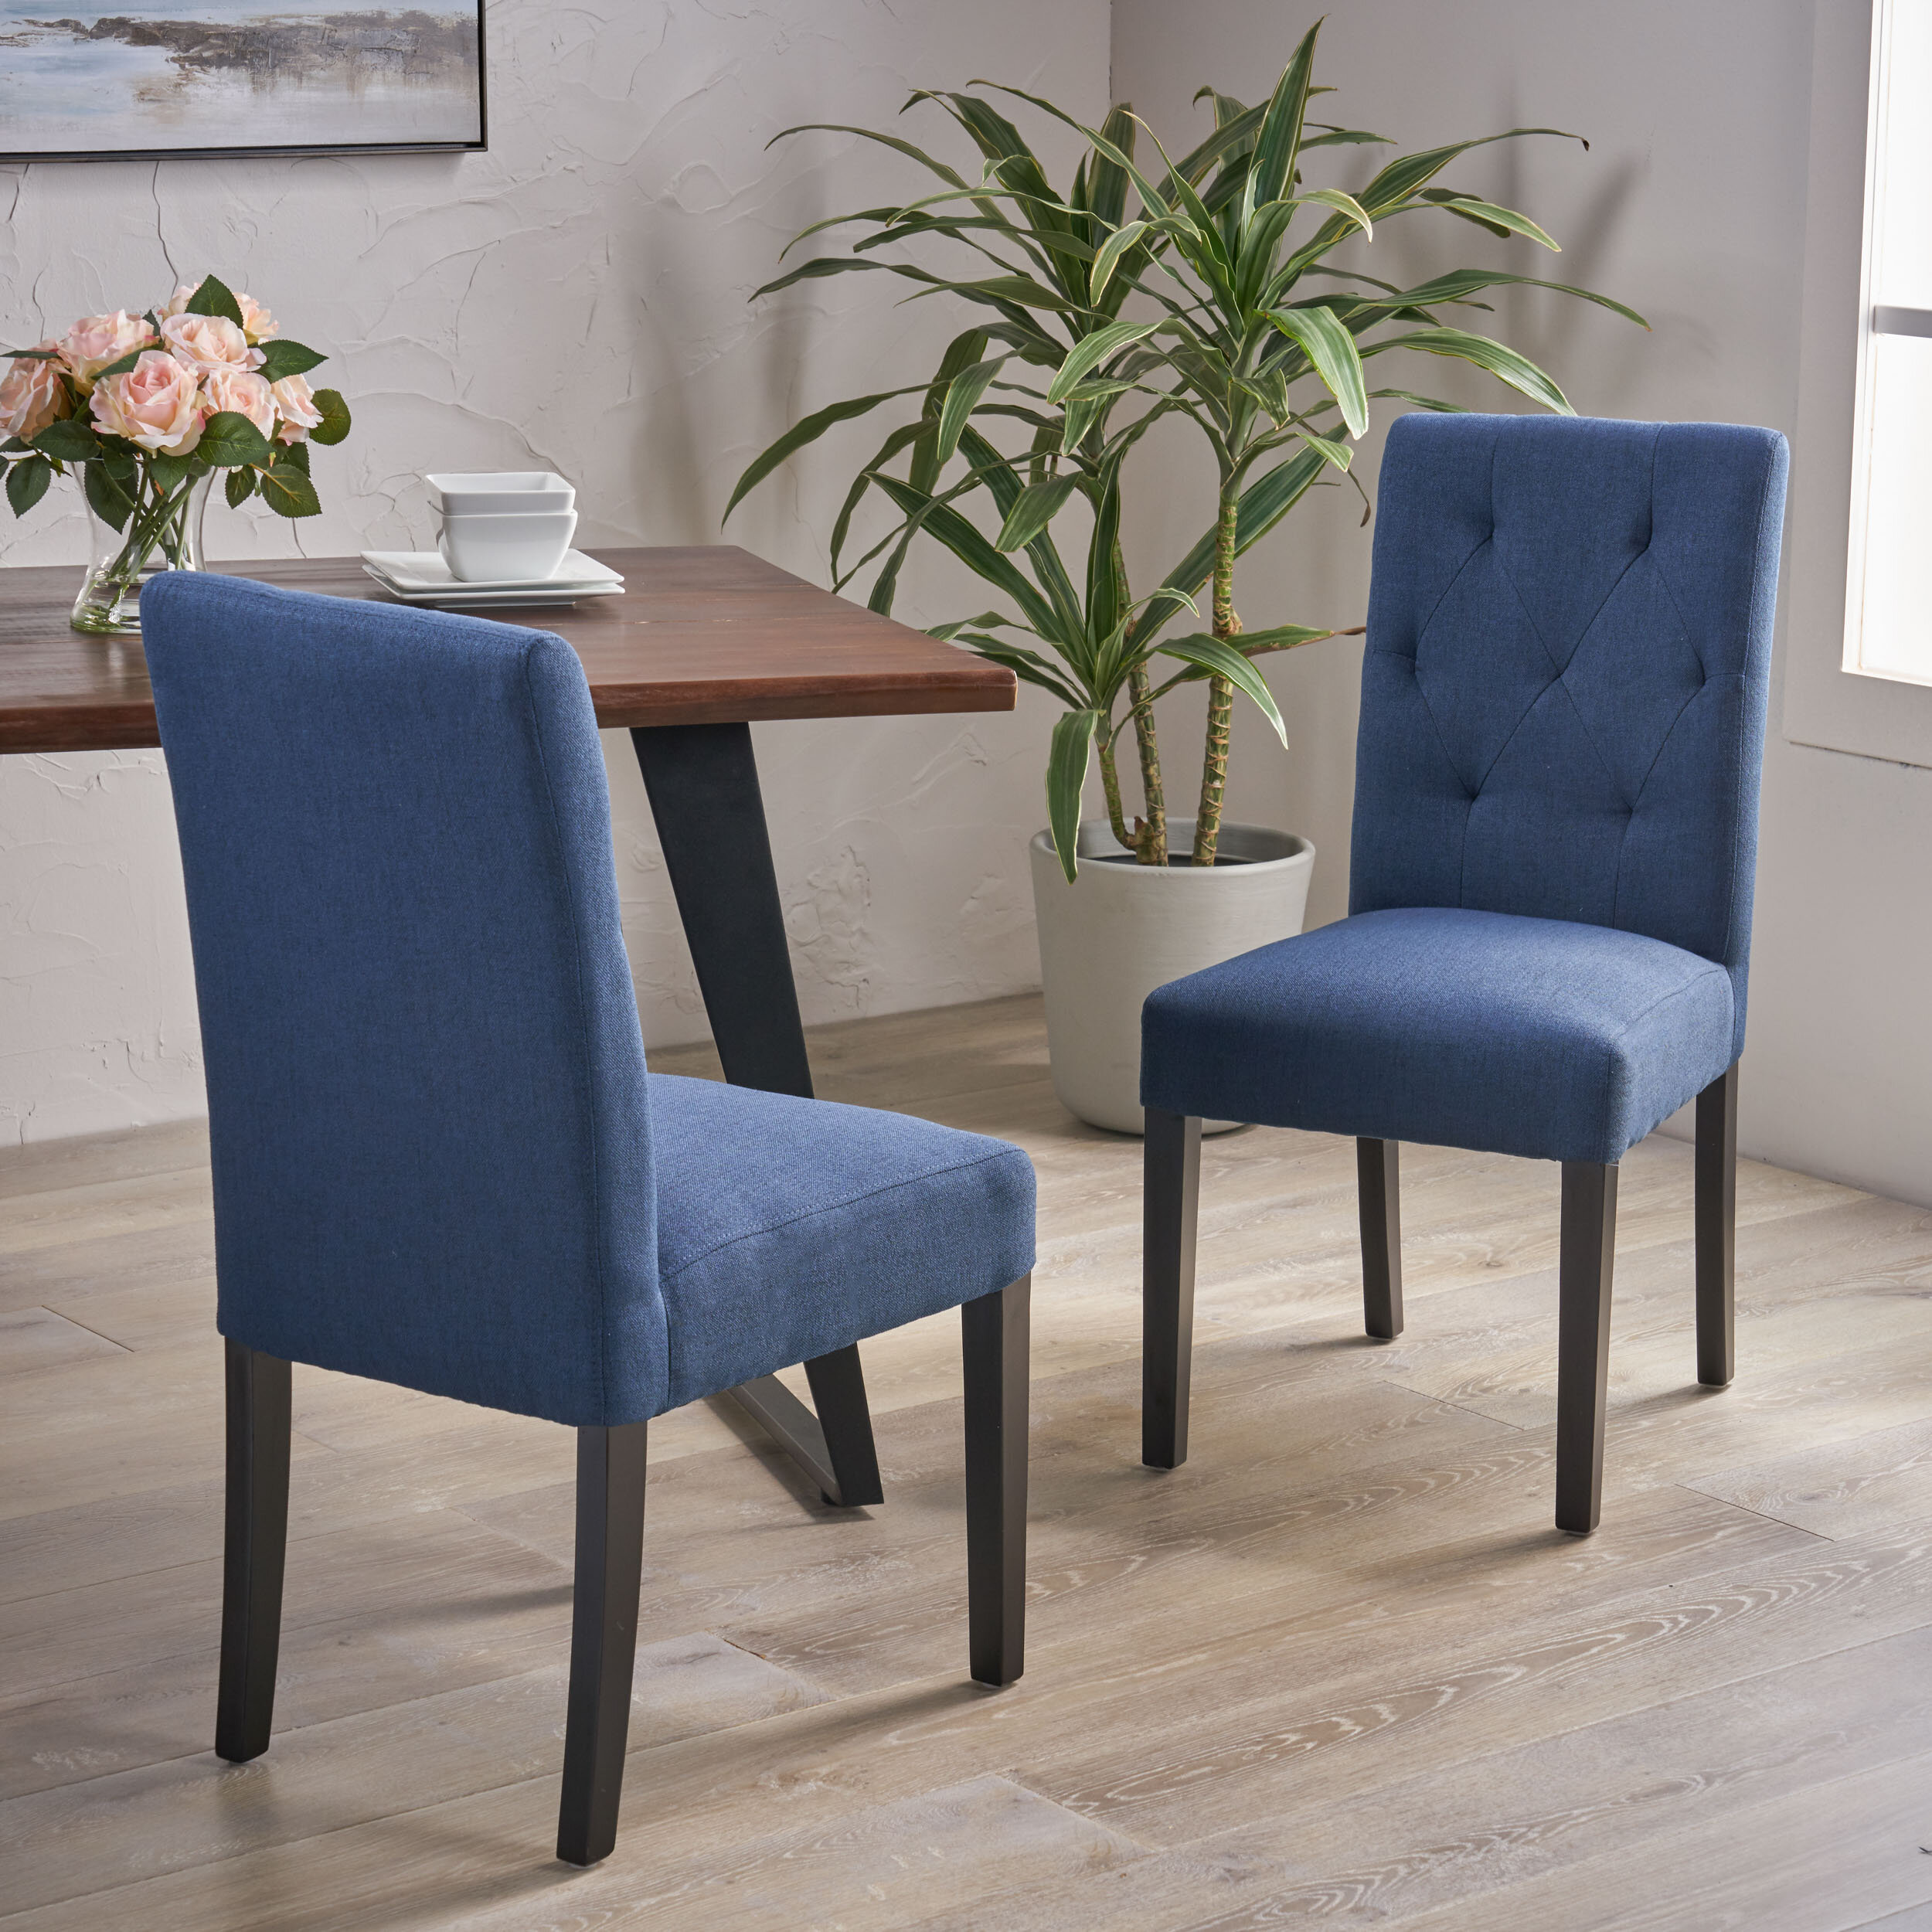 Picture of: Red Barrel Studio Upholstered Dining Chair In Navy Blue Wayfair